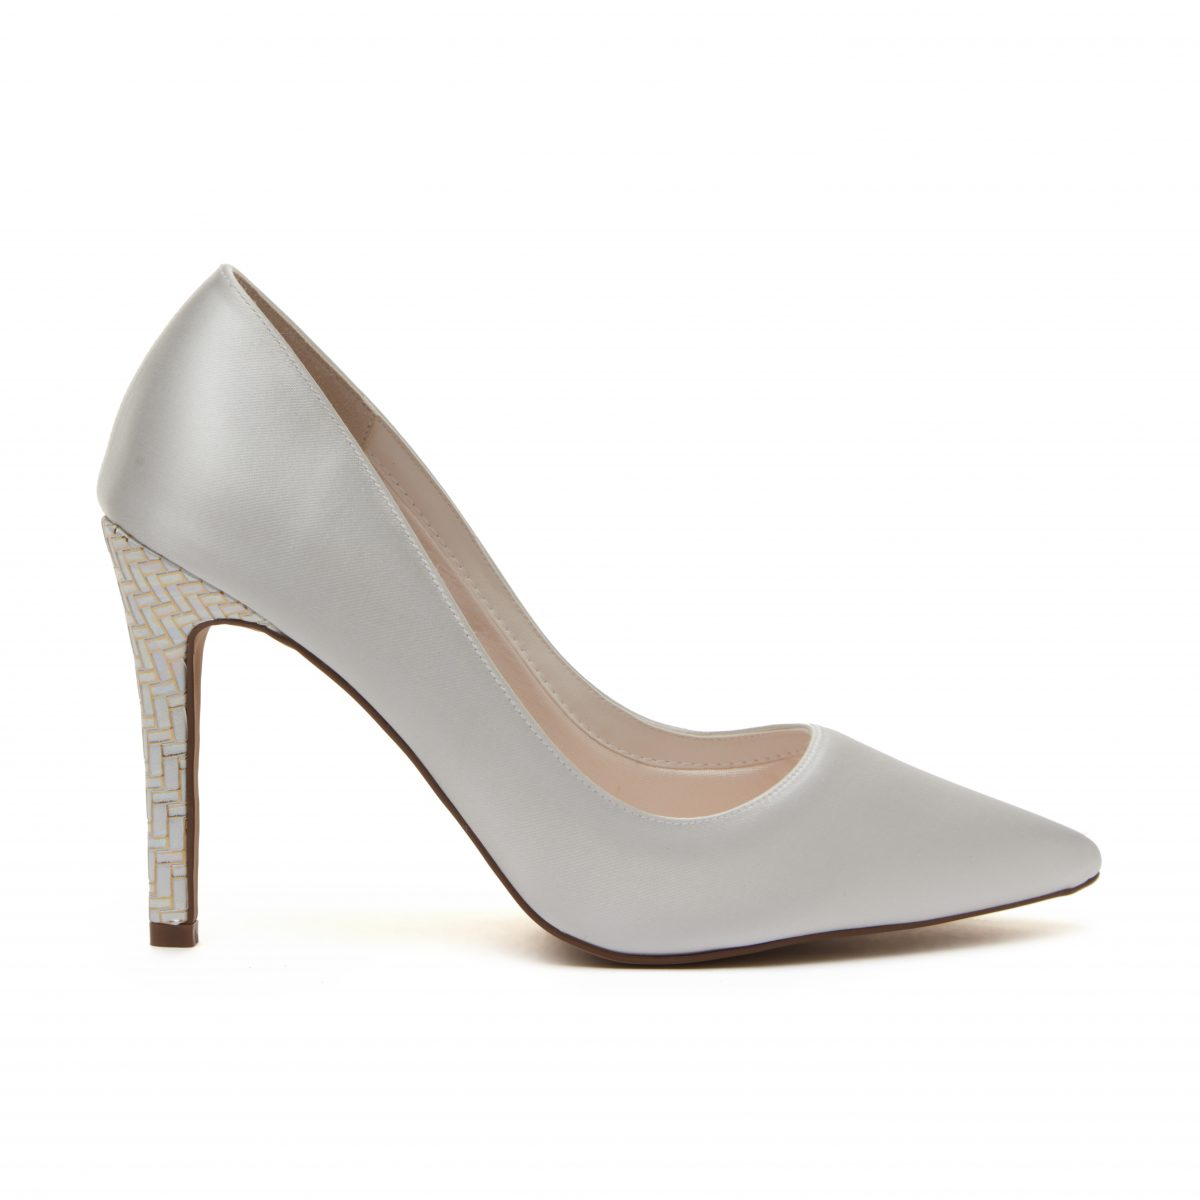 Rainbow Club Rochelle - Ivory Satin & Parquet Heel Court Shoe 2